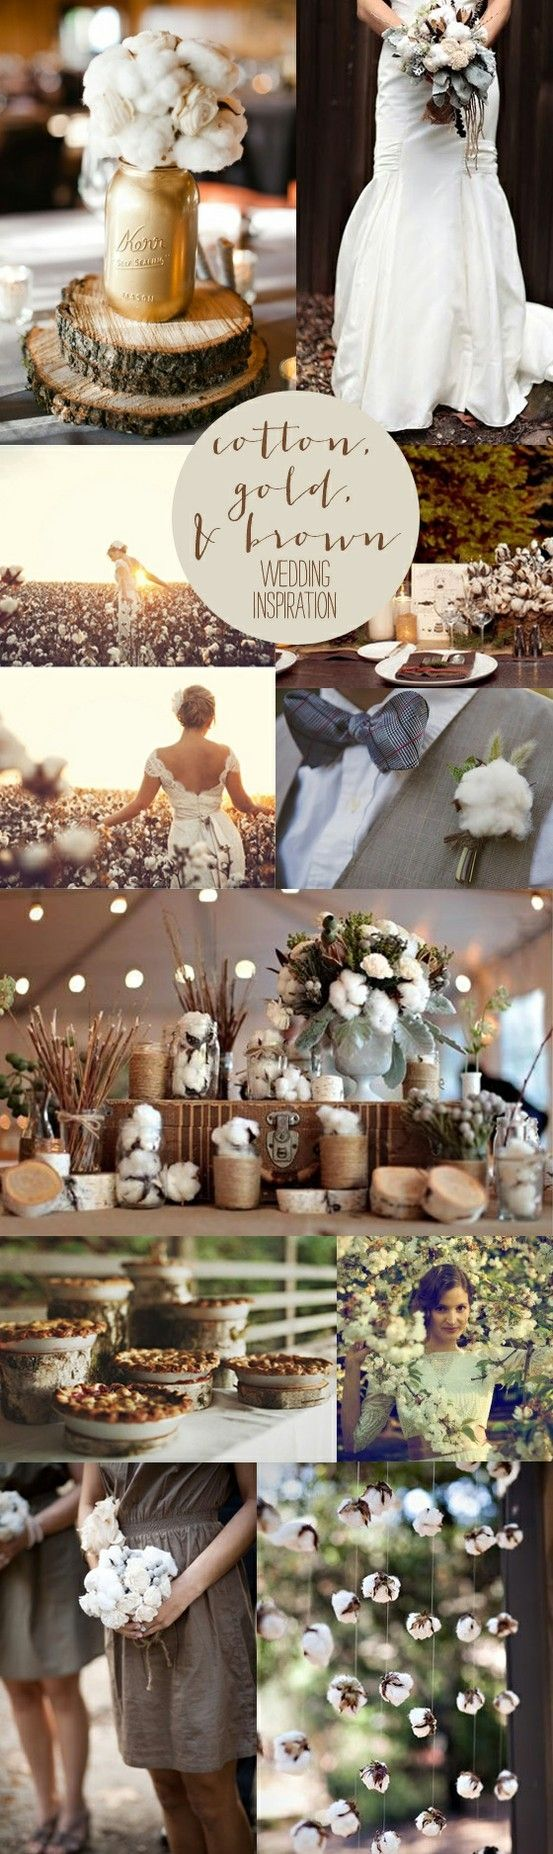 cotton, gold, and brown wedding inspiration by cherry